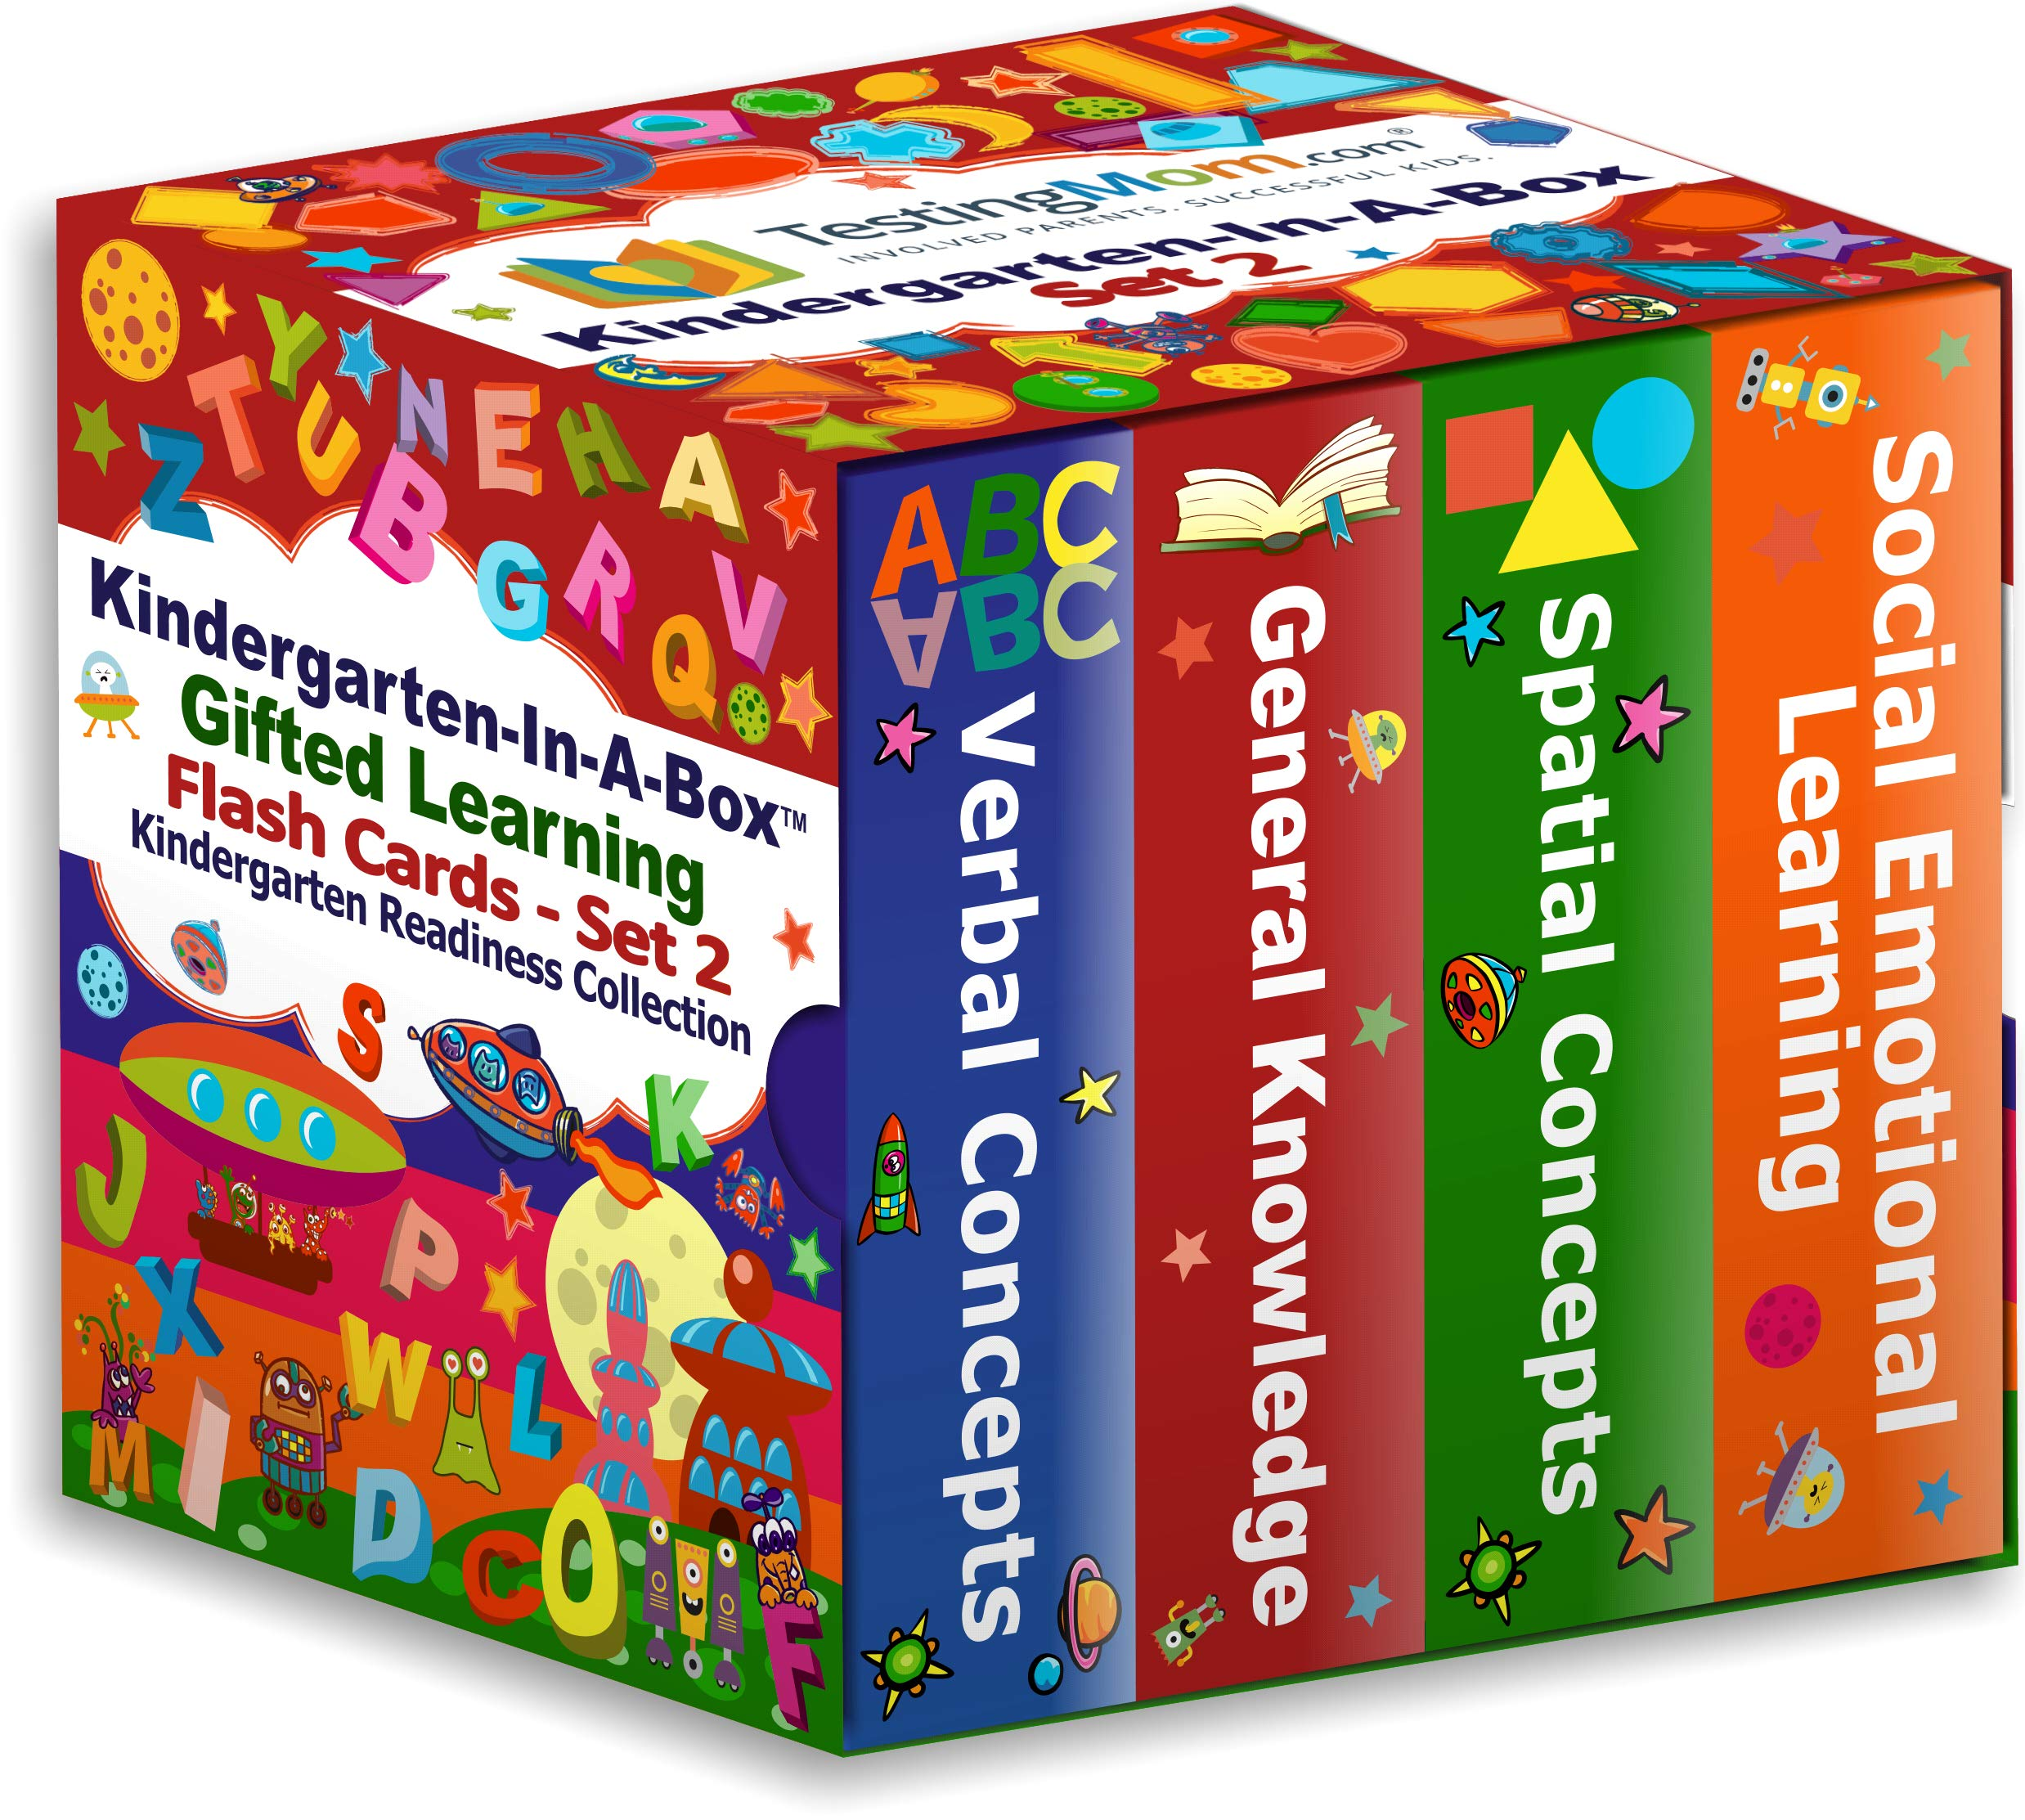 TestingMom.com Gifted Learning Flash Cards Bundle - Kindergarten-in-A-Box Set 2 - Verbal Concepts, General Knowledge, Spatial Concepts, Social Emotional Learning (Set 2) by TestingMom.com (Image #1)